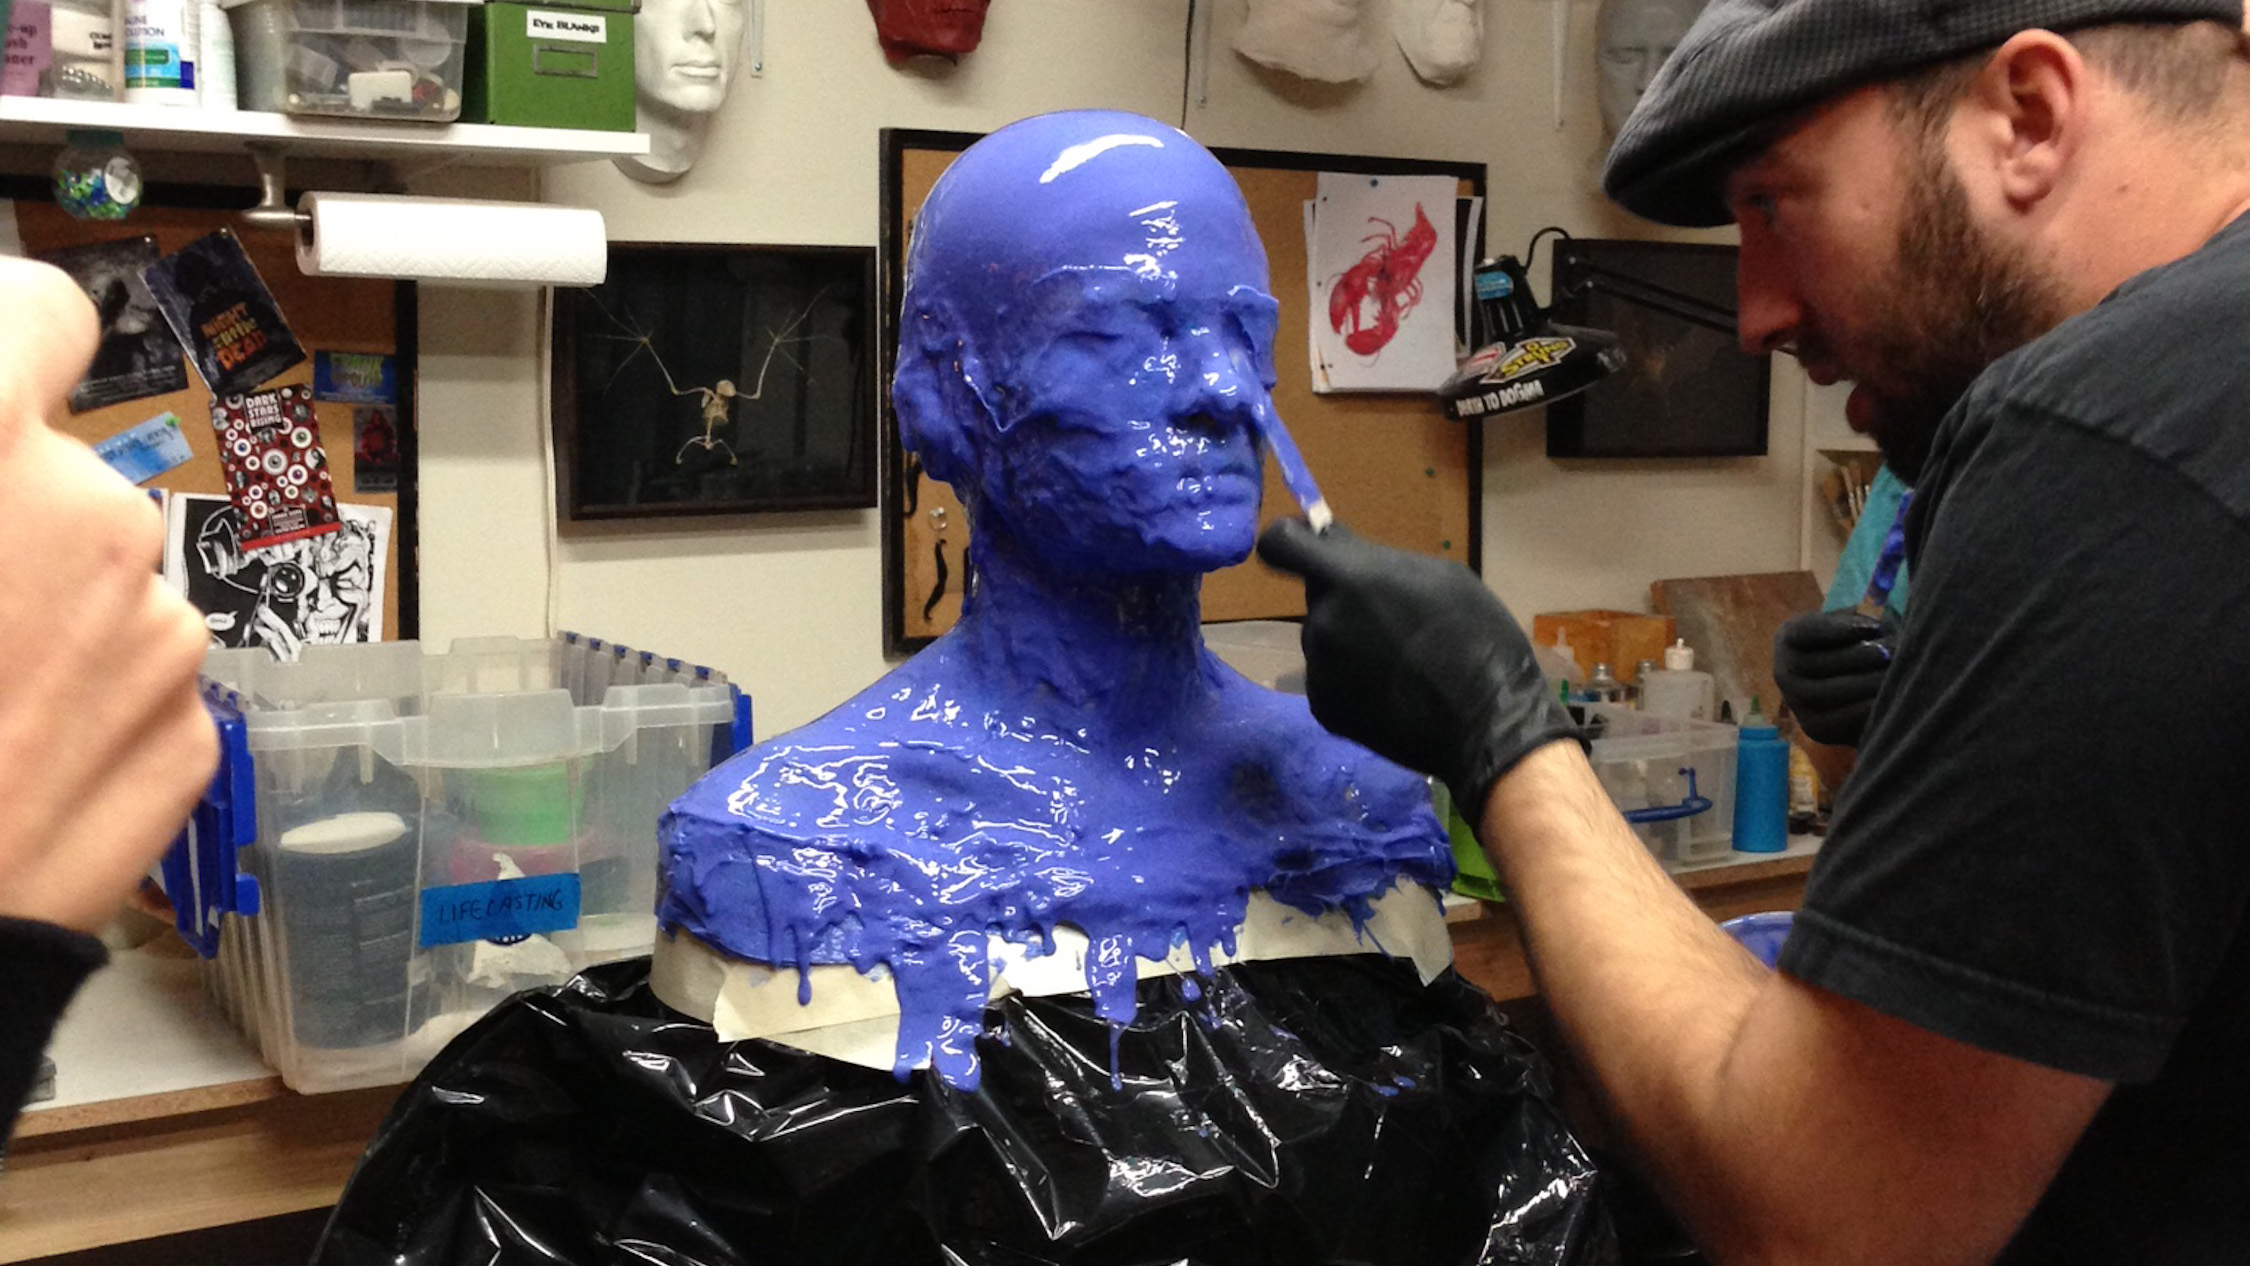 The Zoidberg Project, Part 2: How To Make a Life Cast - Tested